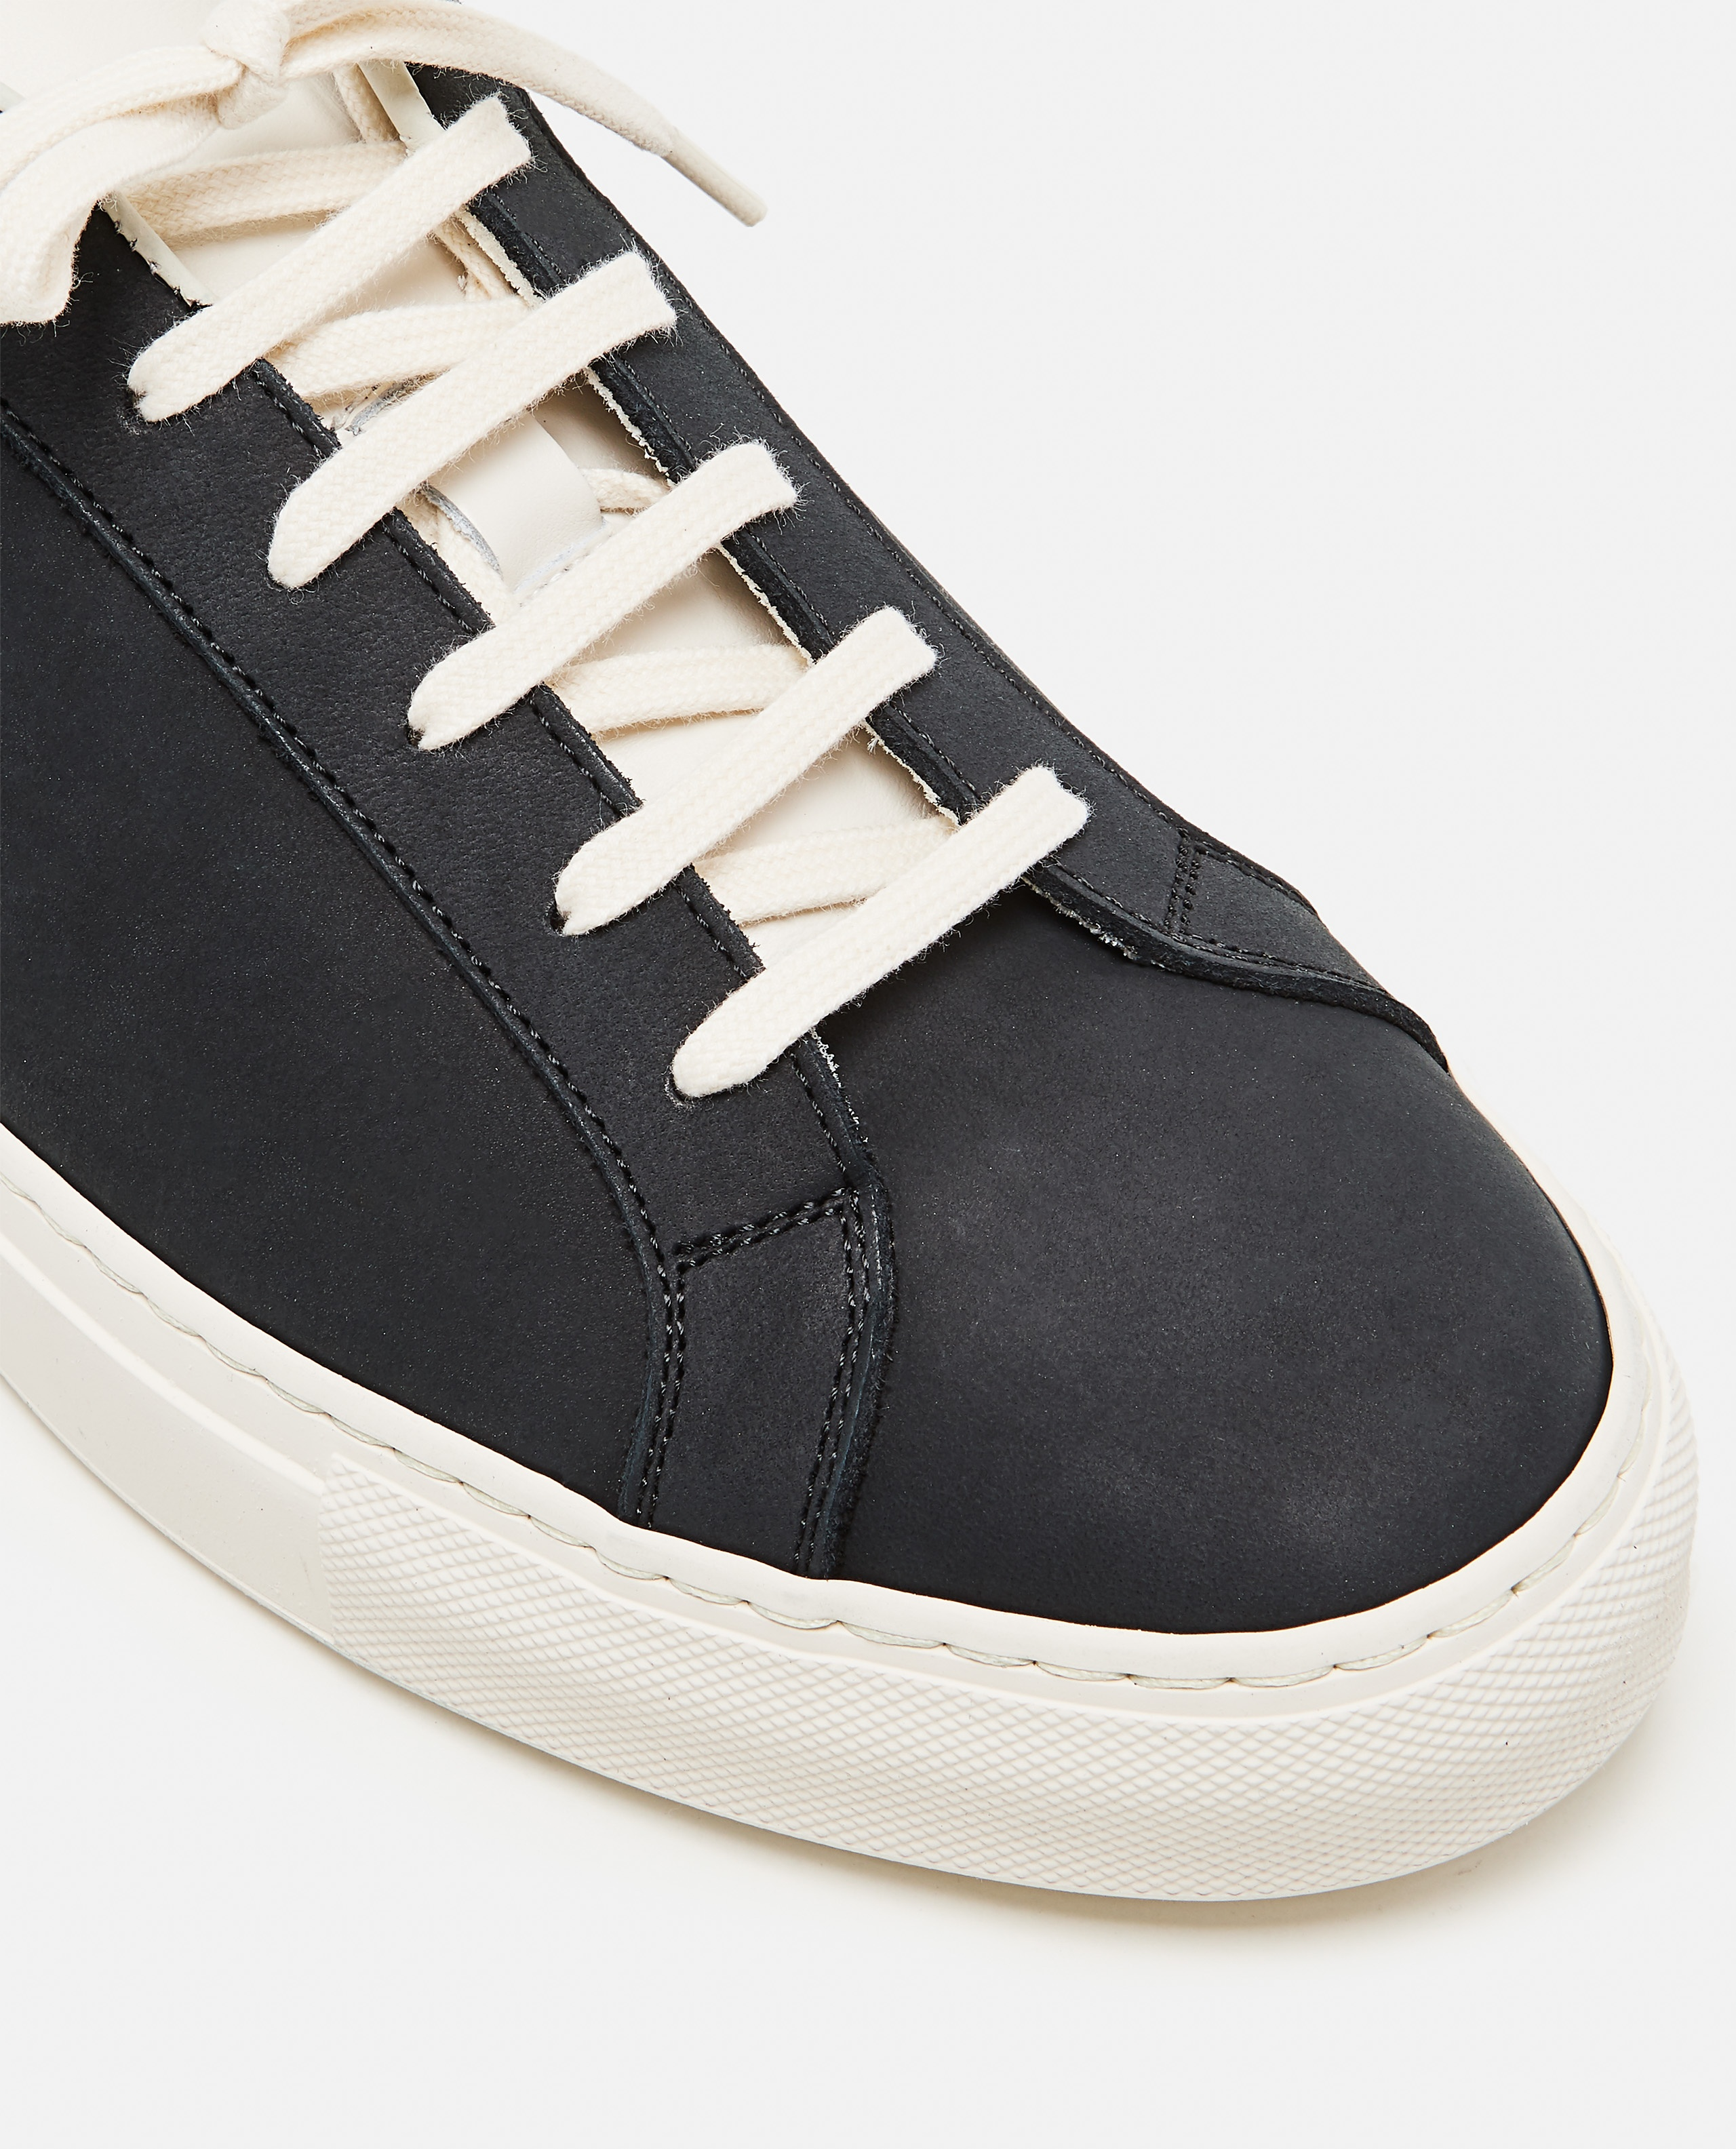 Sneakers Achilles Low in pelle nabuk Uomo Common Projects 000305520044801 4